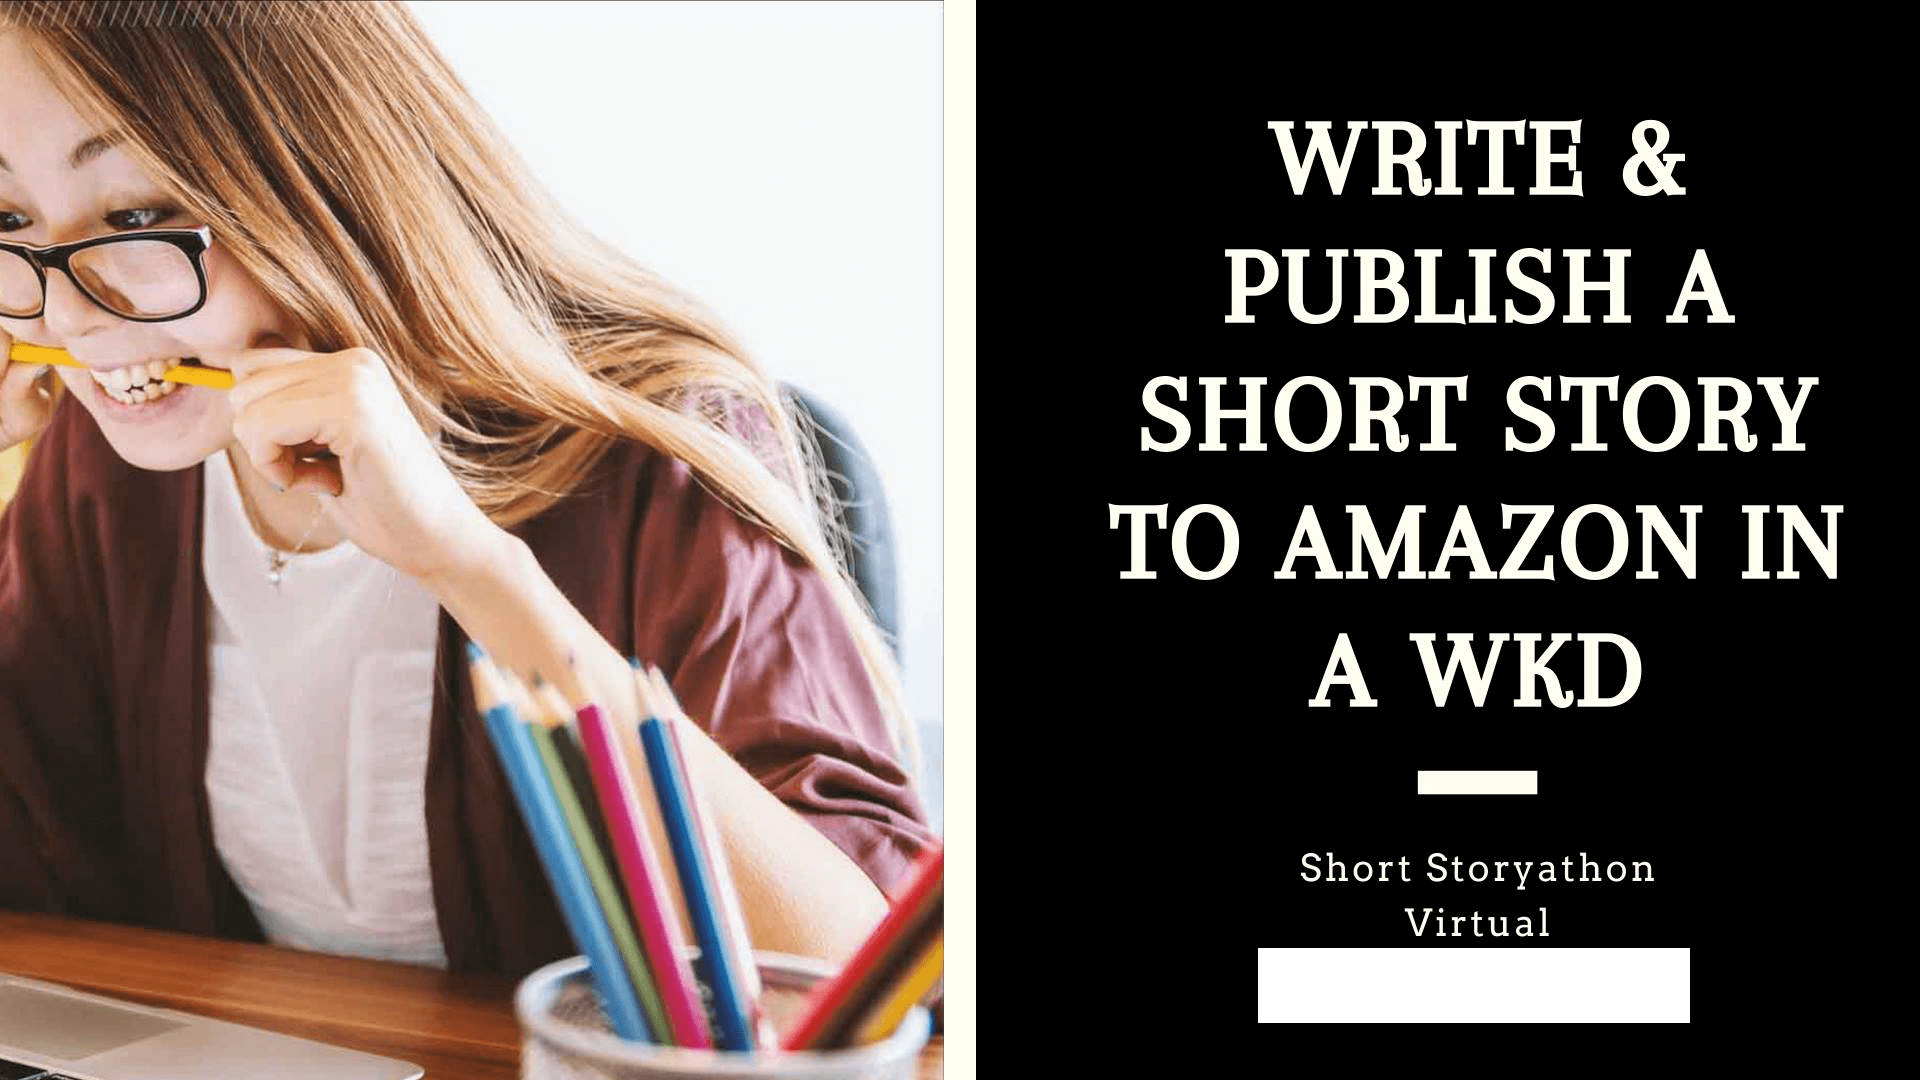 Writing Workshop Write and publish a short story